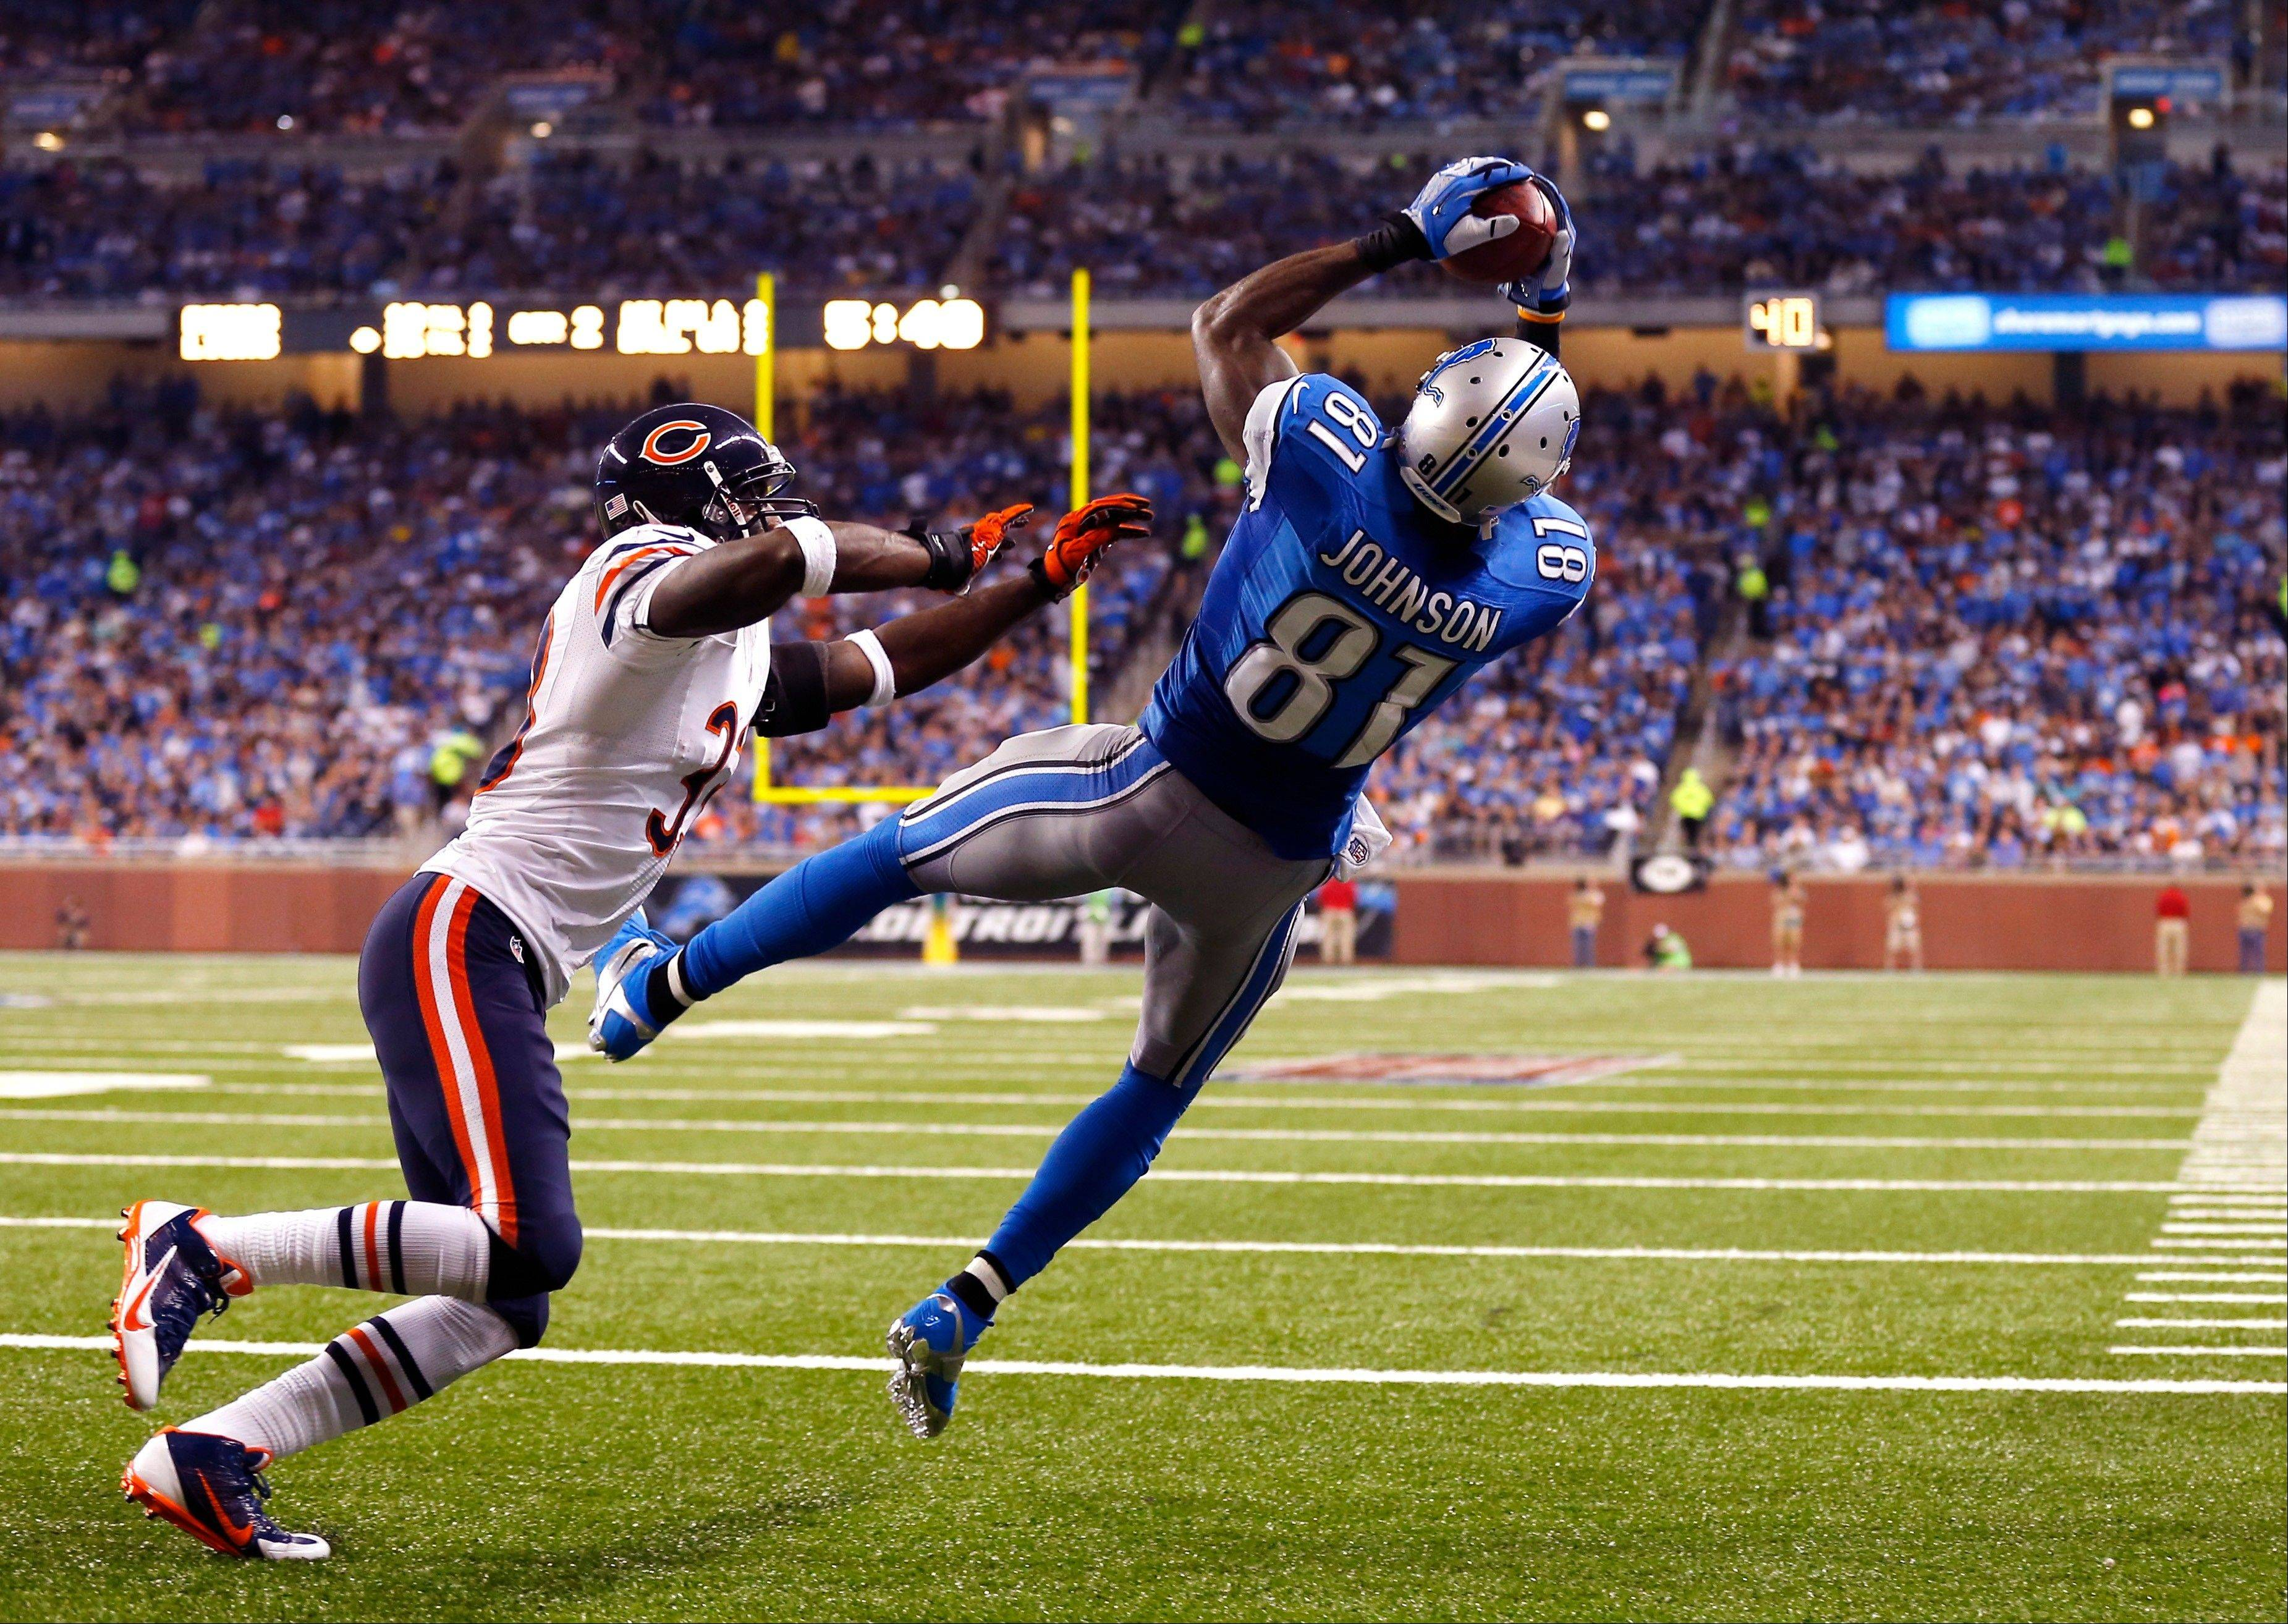 Detroit Lions wide receiver Calvin Johnson (81), defended by Chicago Bears cornerback Charles Tillman (33), catches a two-yard touchdown from quarterback Matthew Stafford during the second quarter.